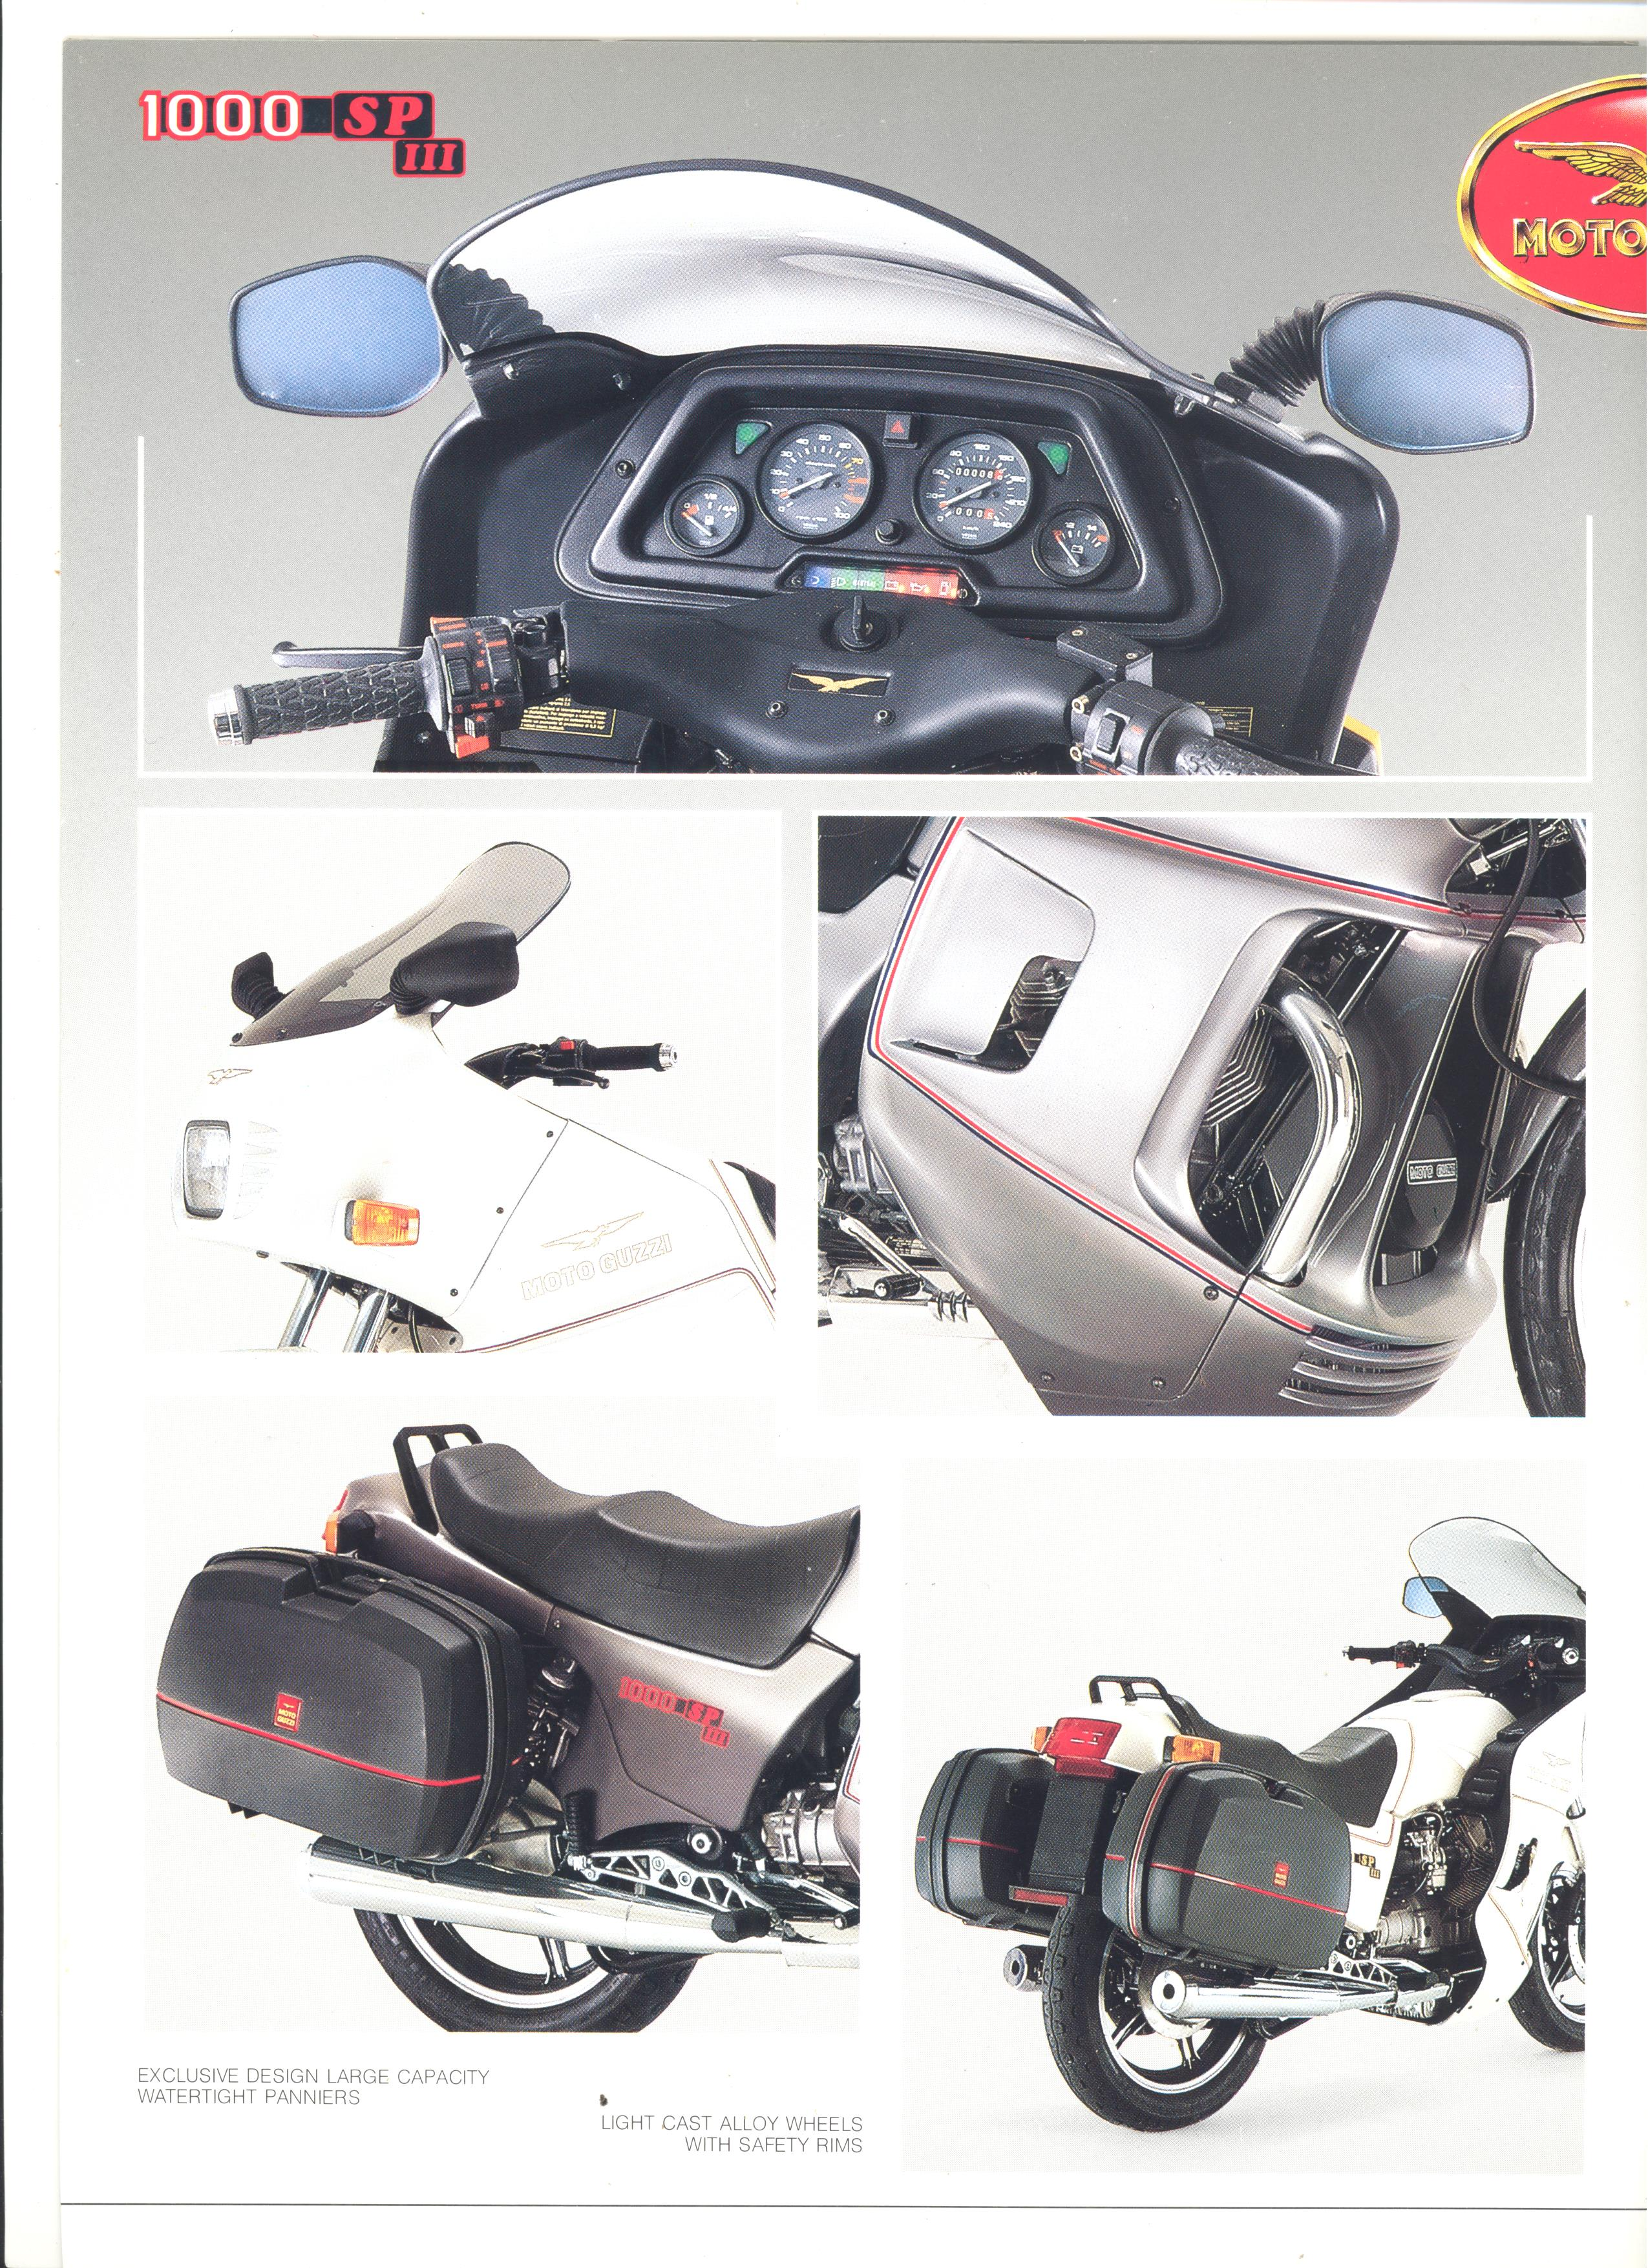 Moto Guzzi factory brochure: 1000 SP III